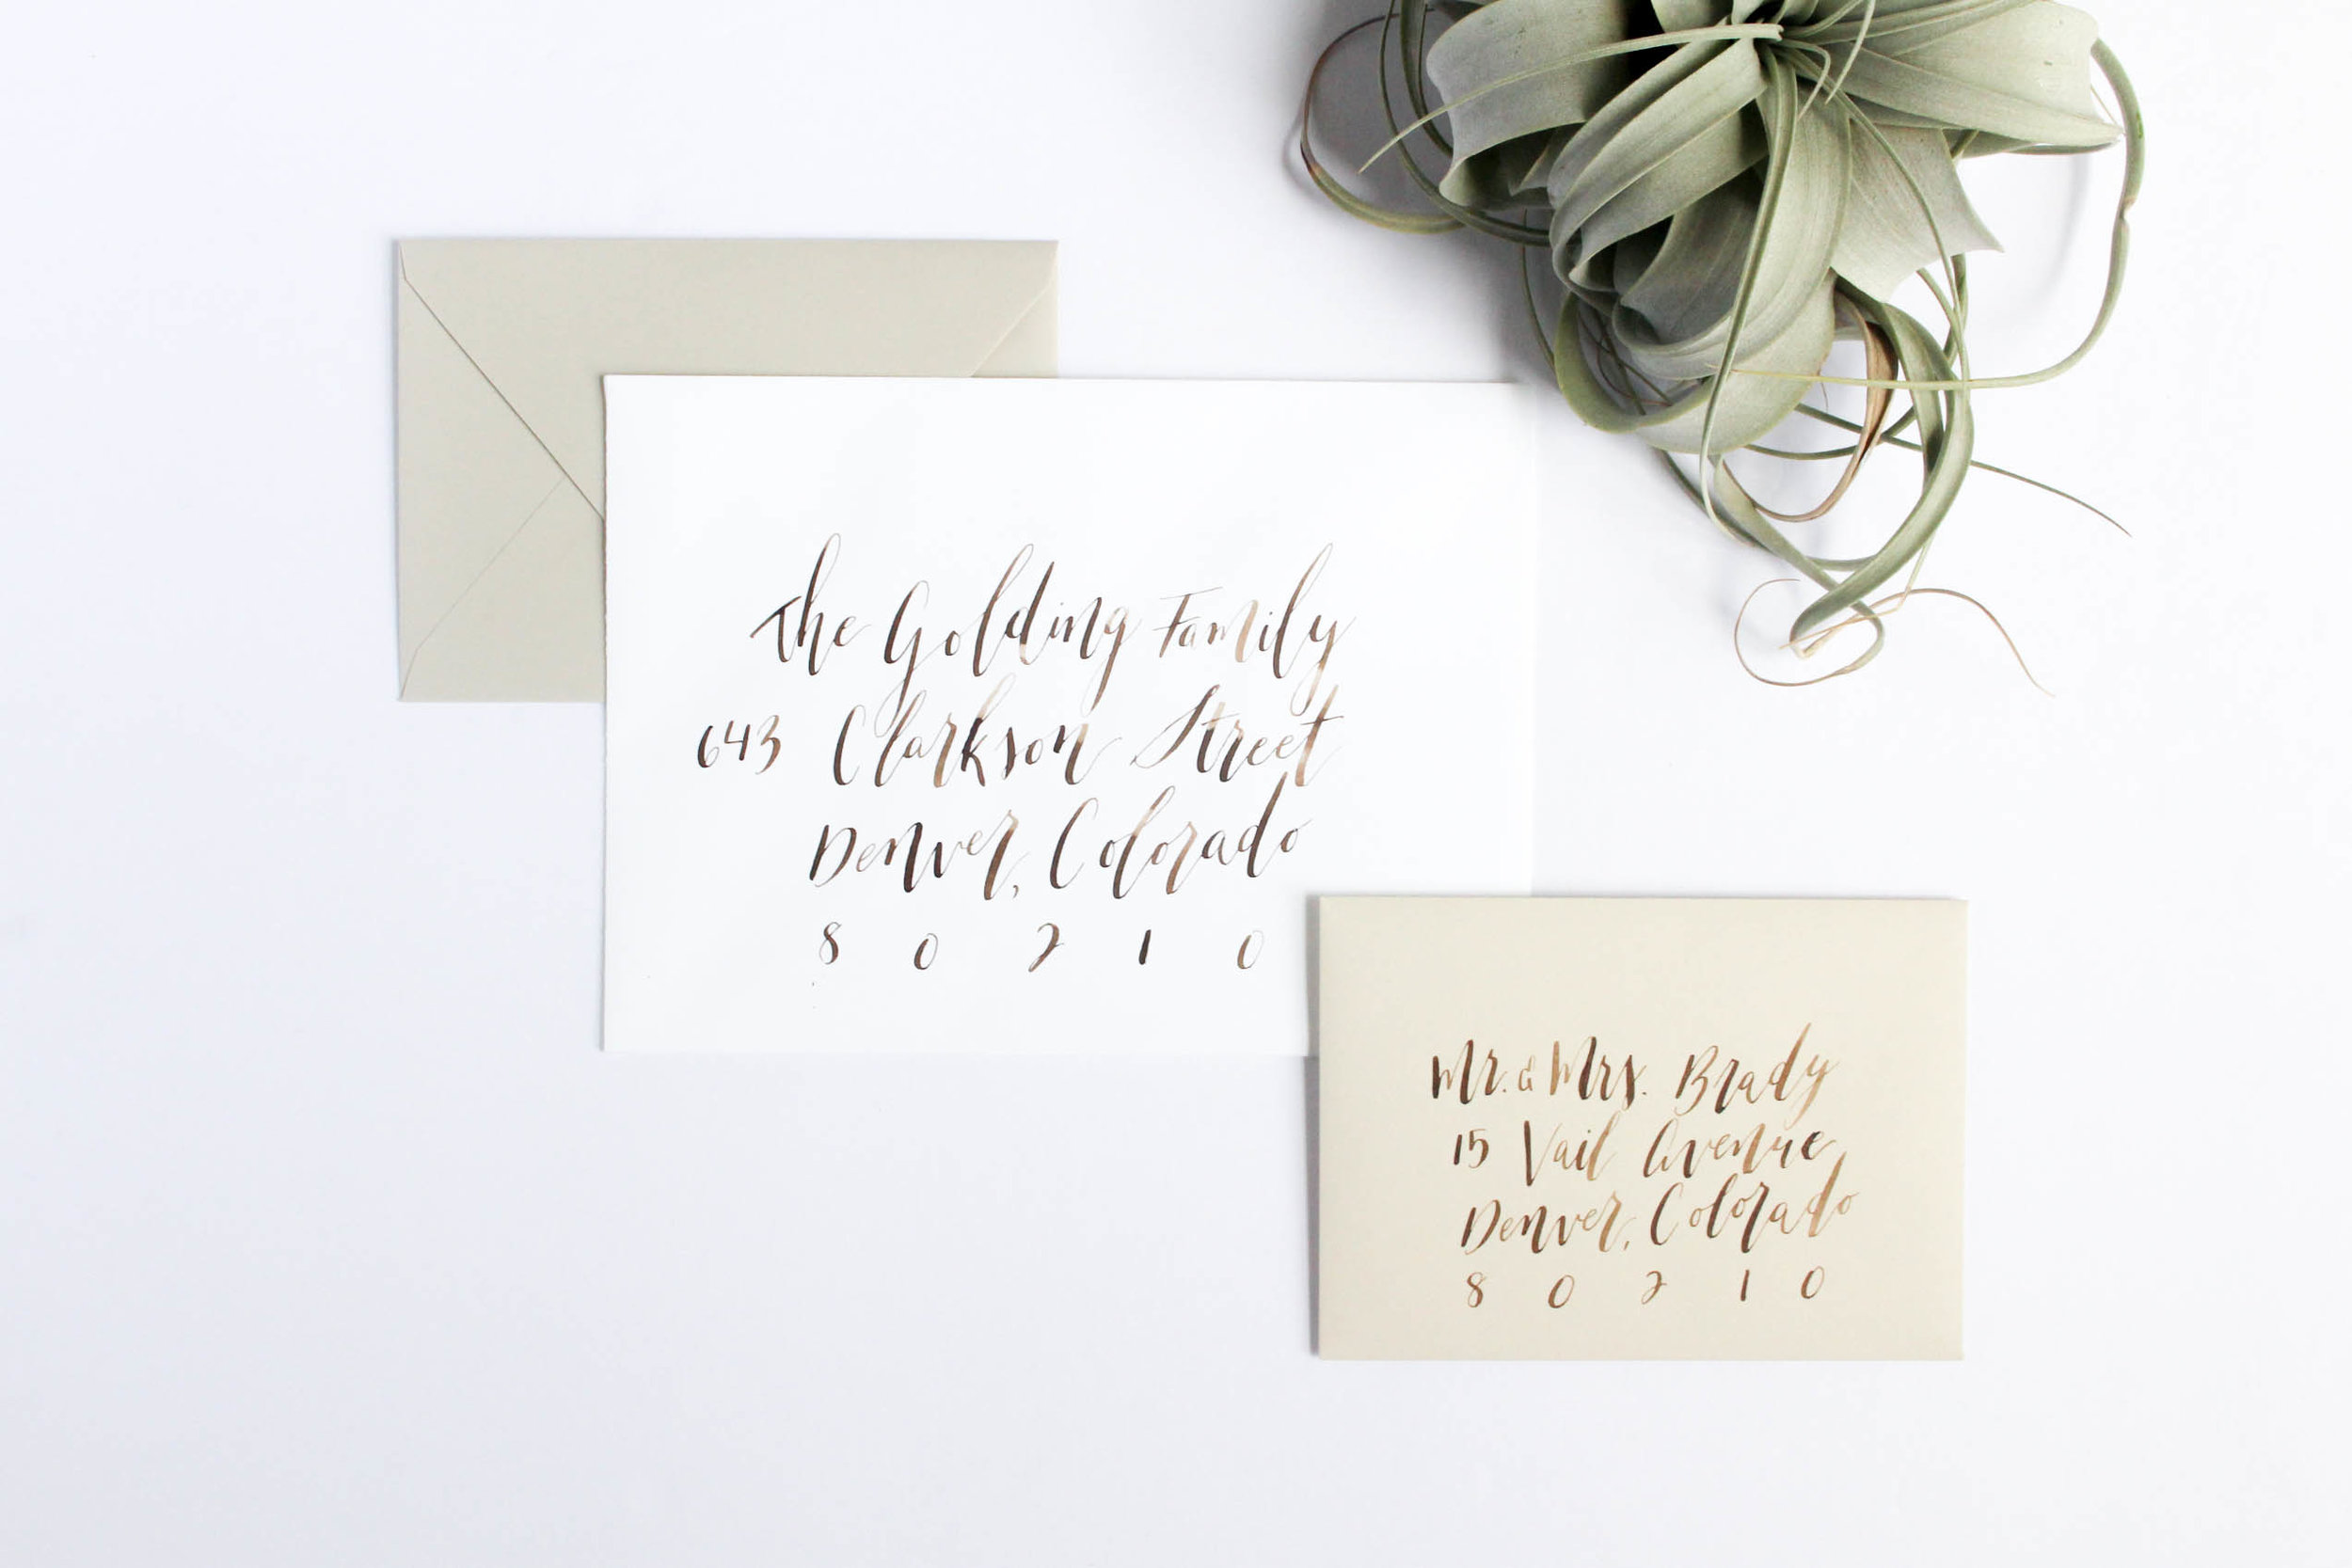 Envelope Addressing - Brown Ink Calligraphy on White and Beige Envelopes - True North Paper Co